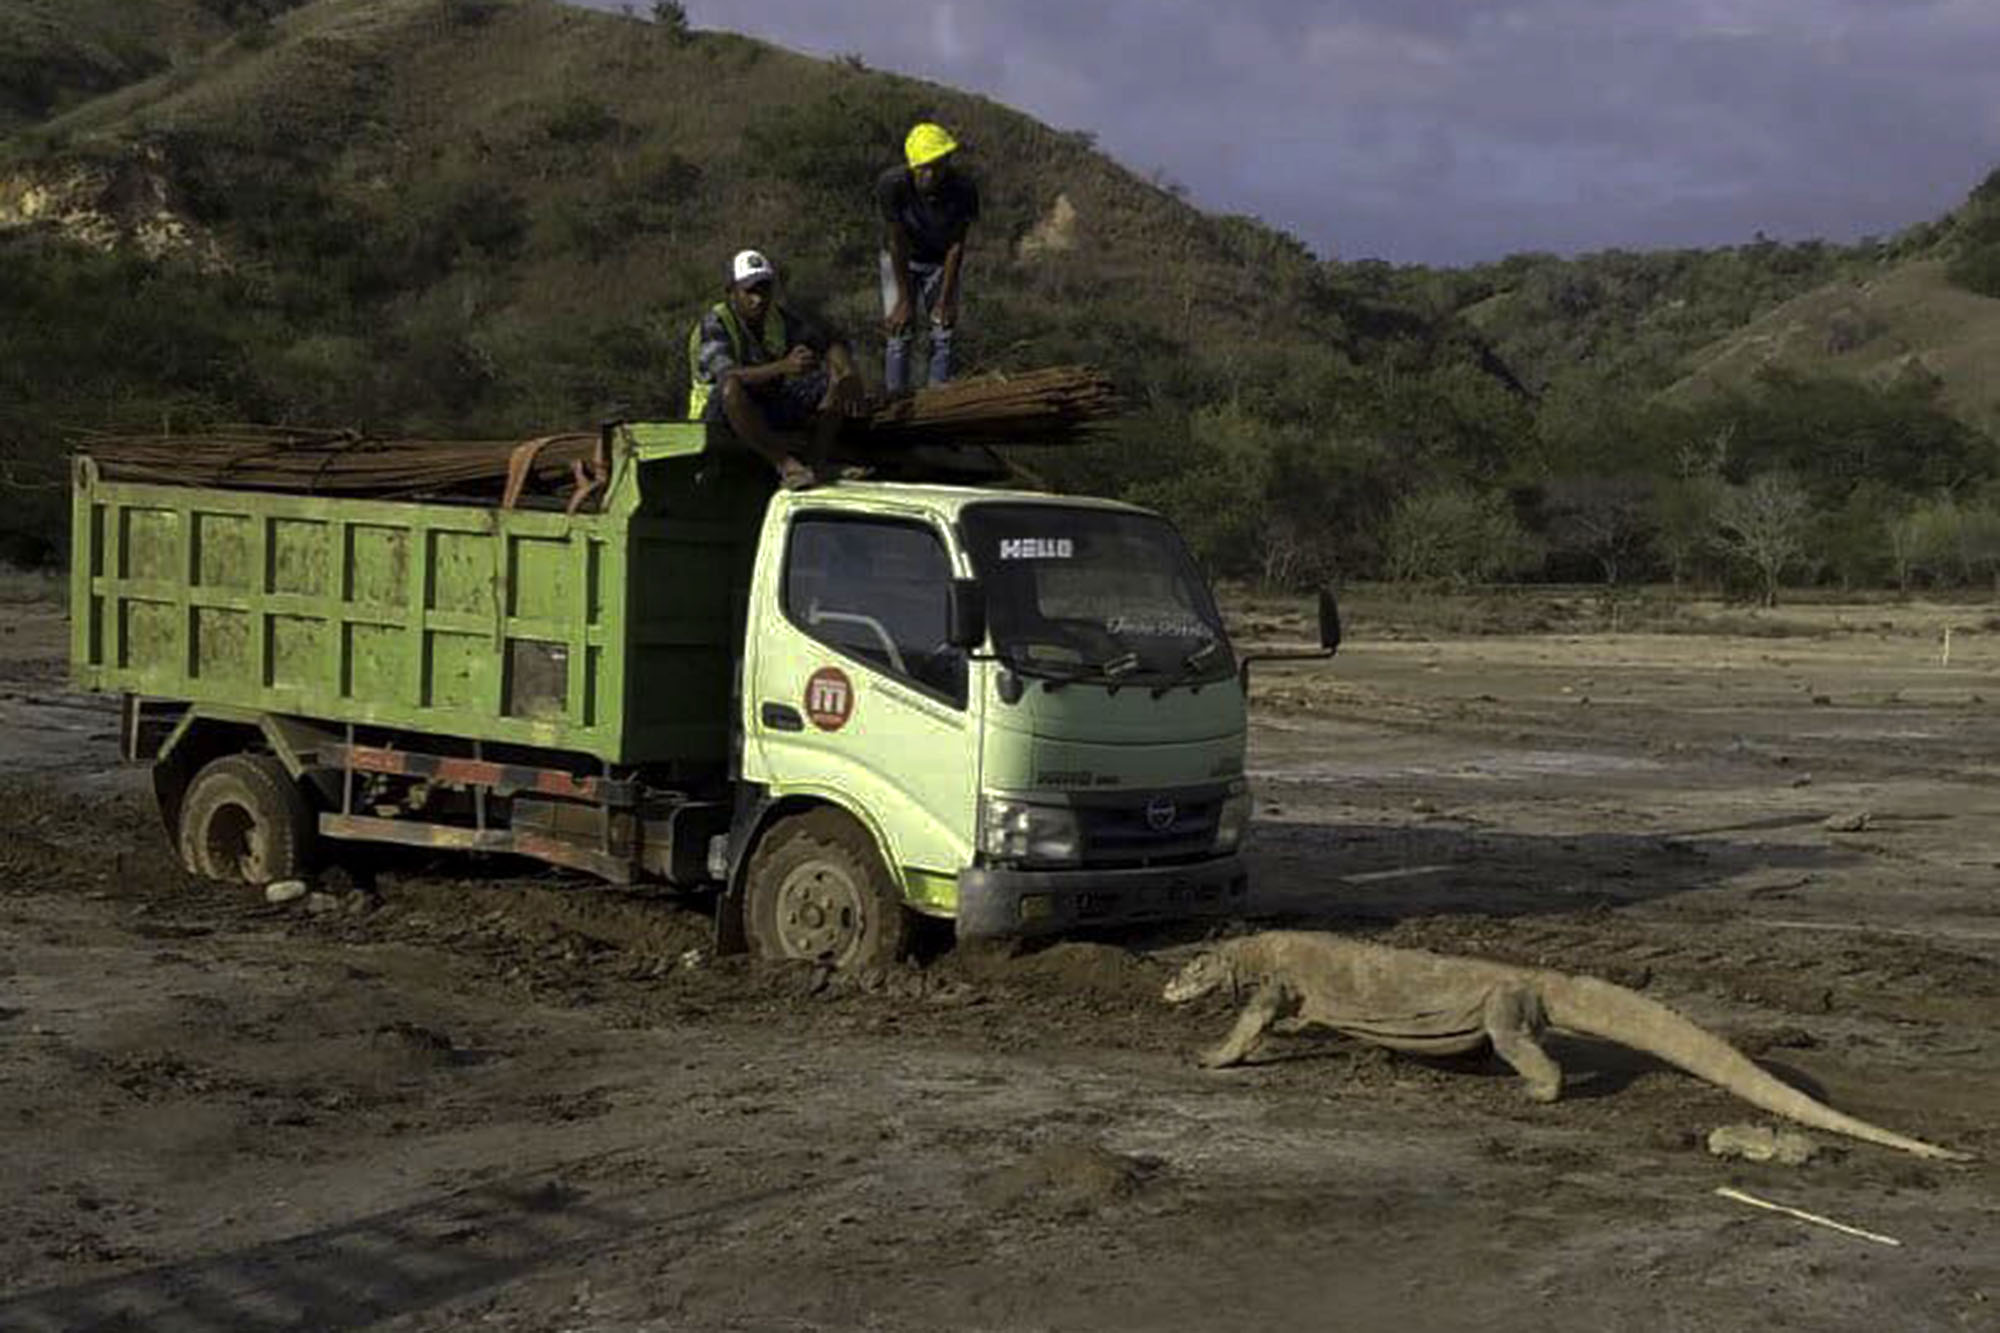 Komodo dragon photo sparks concerns about Indonesia's ...